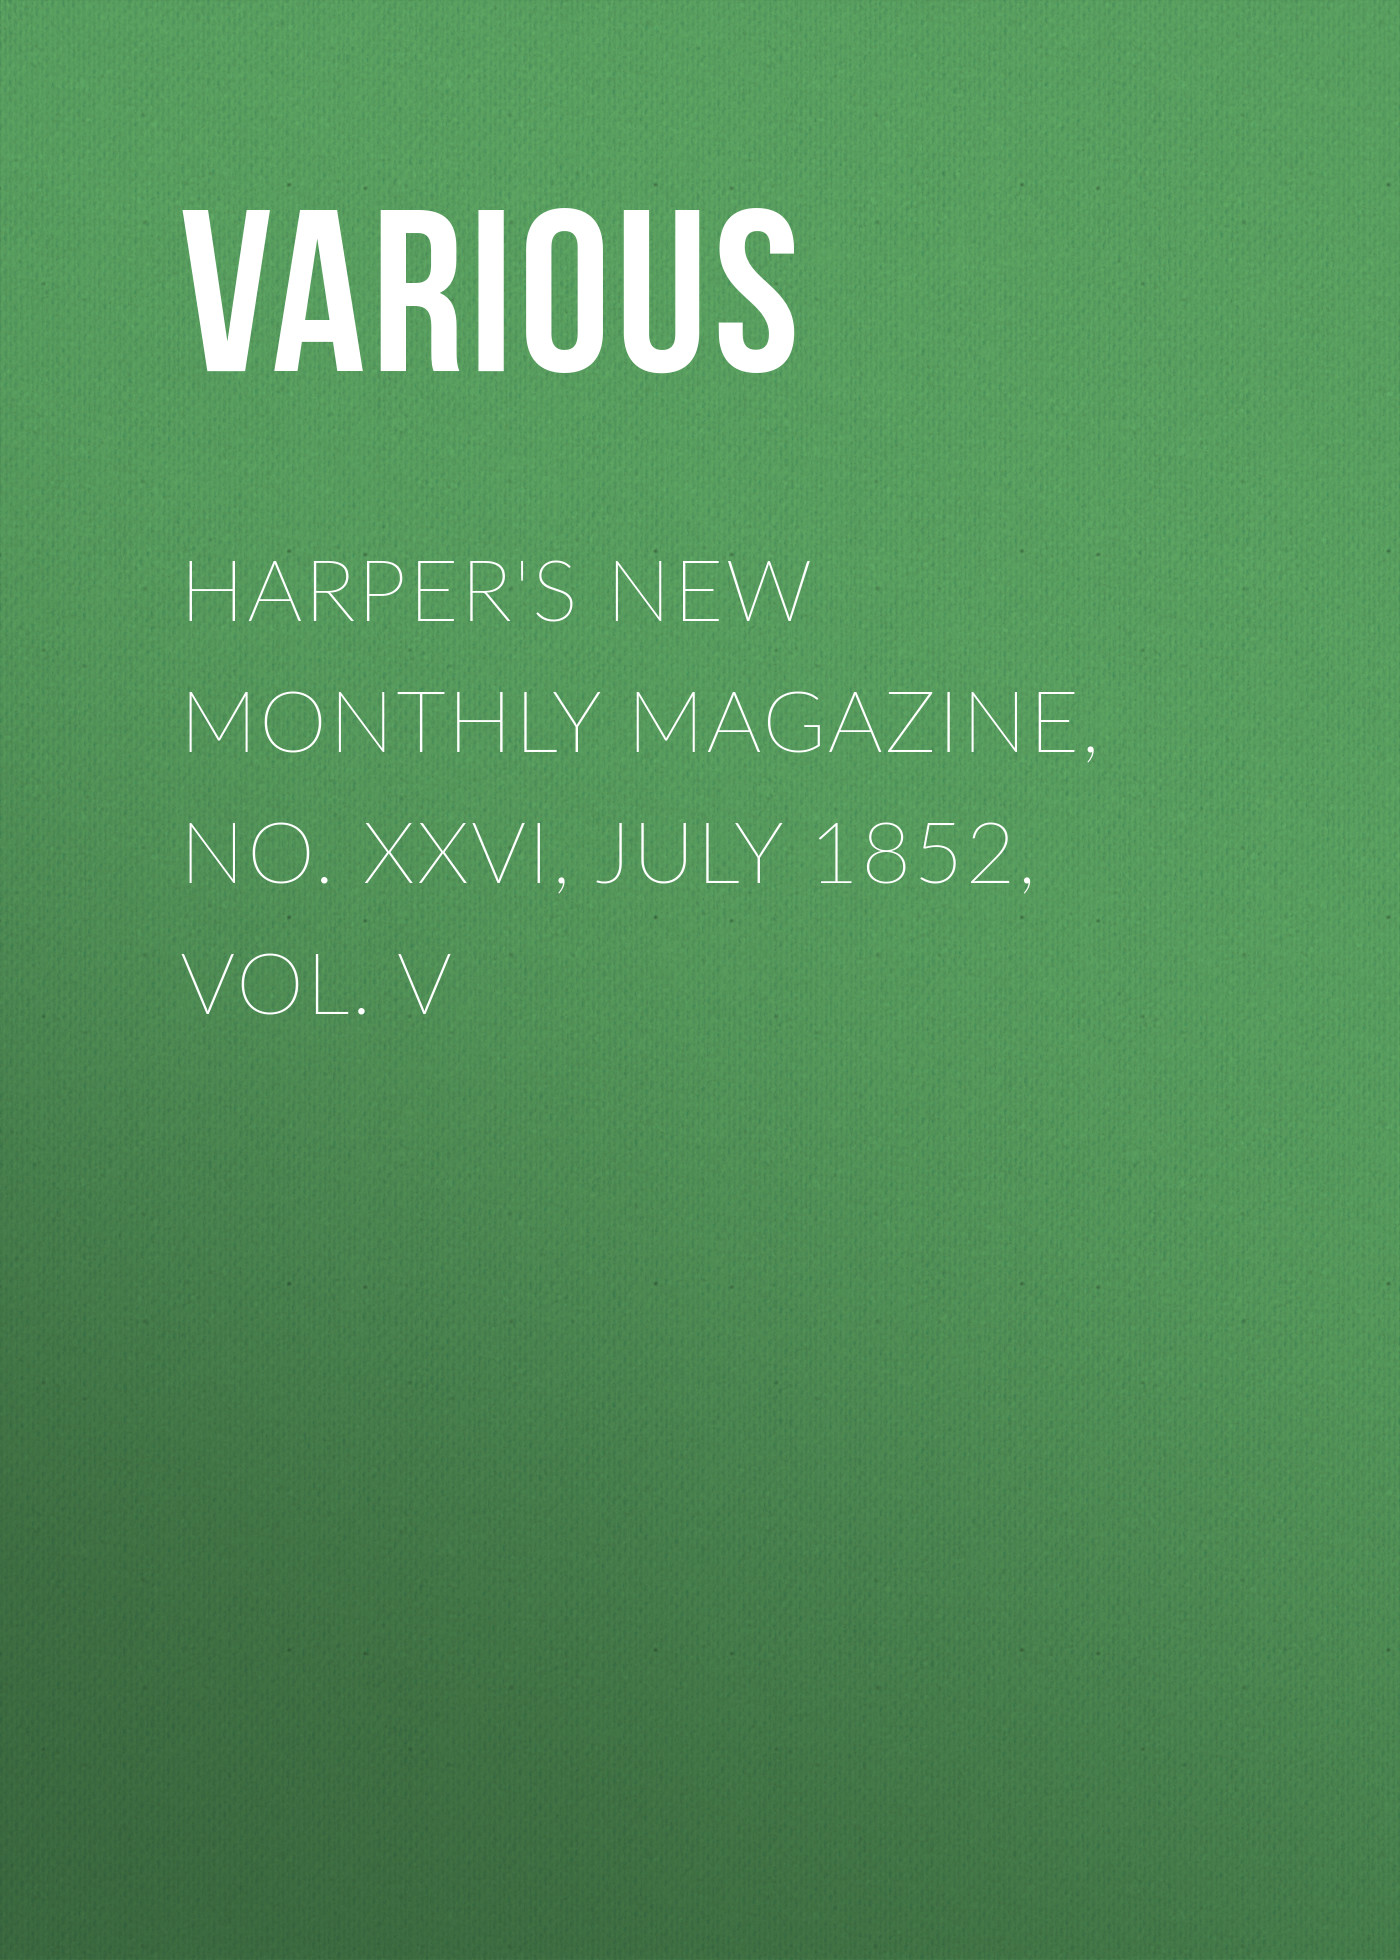 Фото - Various Harper's New Monthly Magazine, No. XXVI, July 1852, Vol. V various harper s new monthly magazine no xxiii april 1852 vol iv